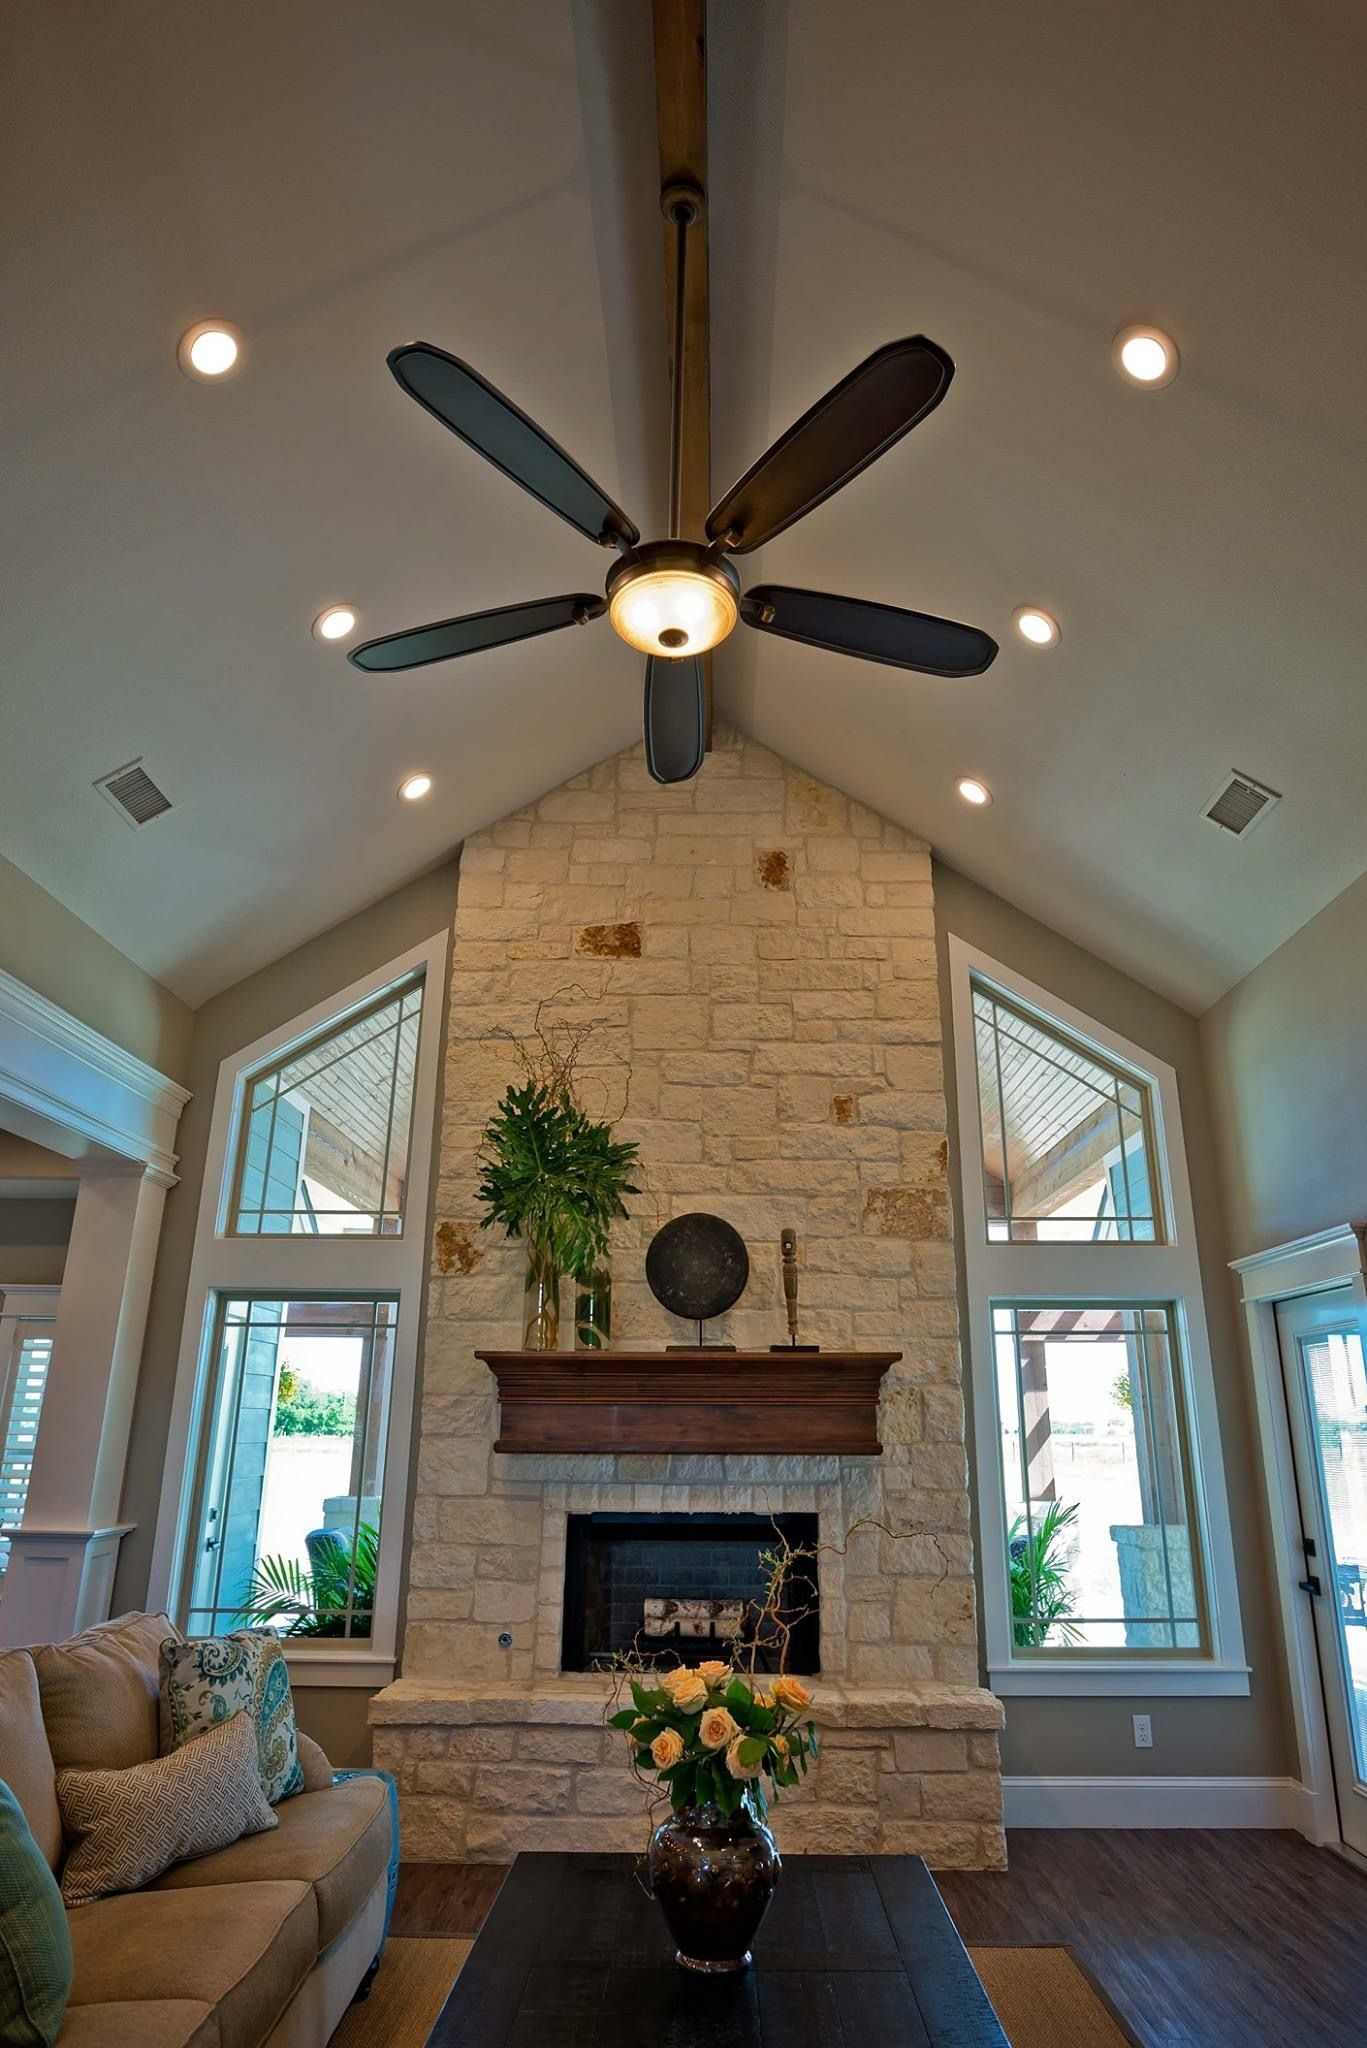 High Ceilings With Recessed Lighting In Living Room Tall